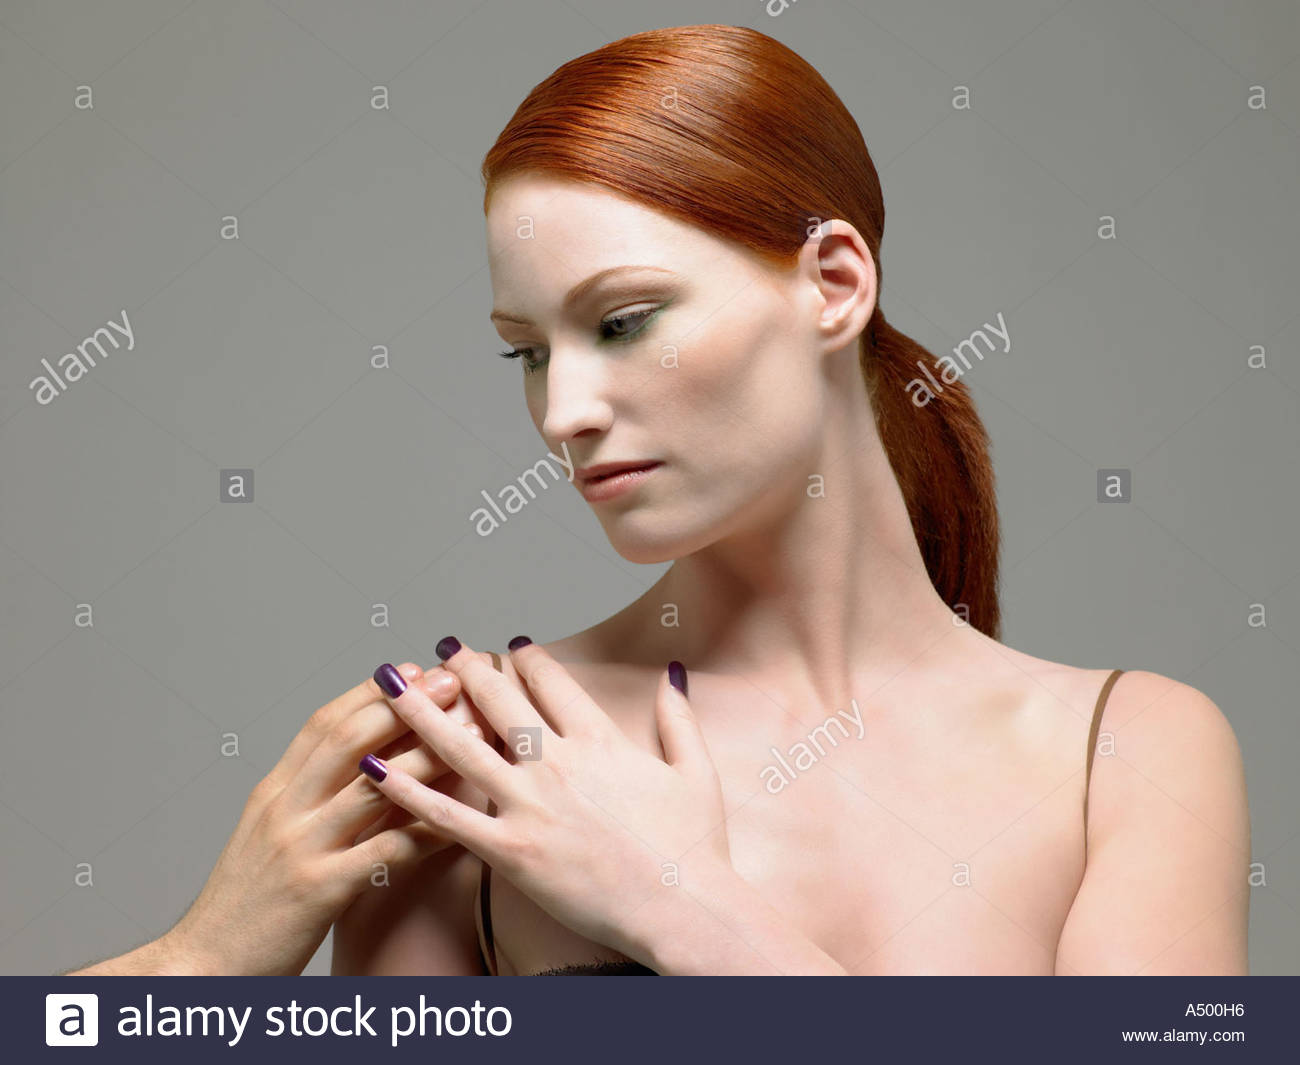 Woman having her shoulder touched - Stock Image